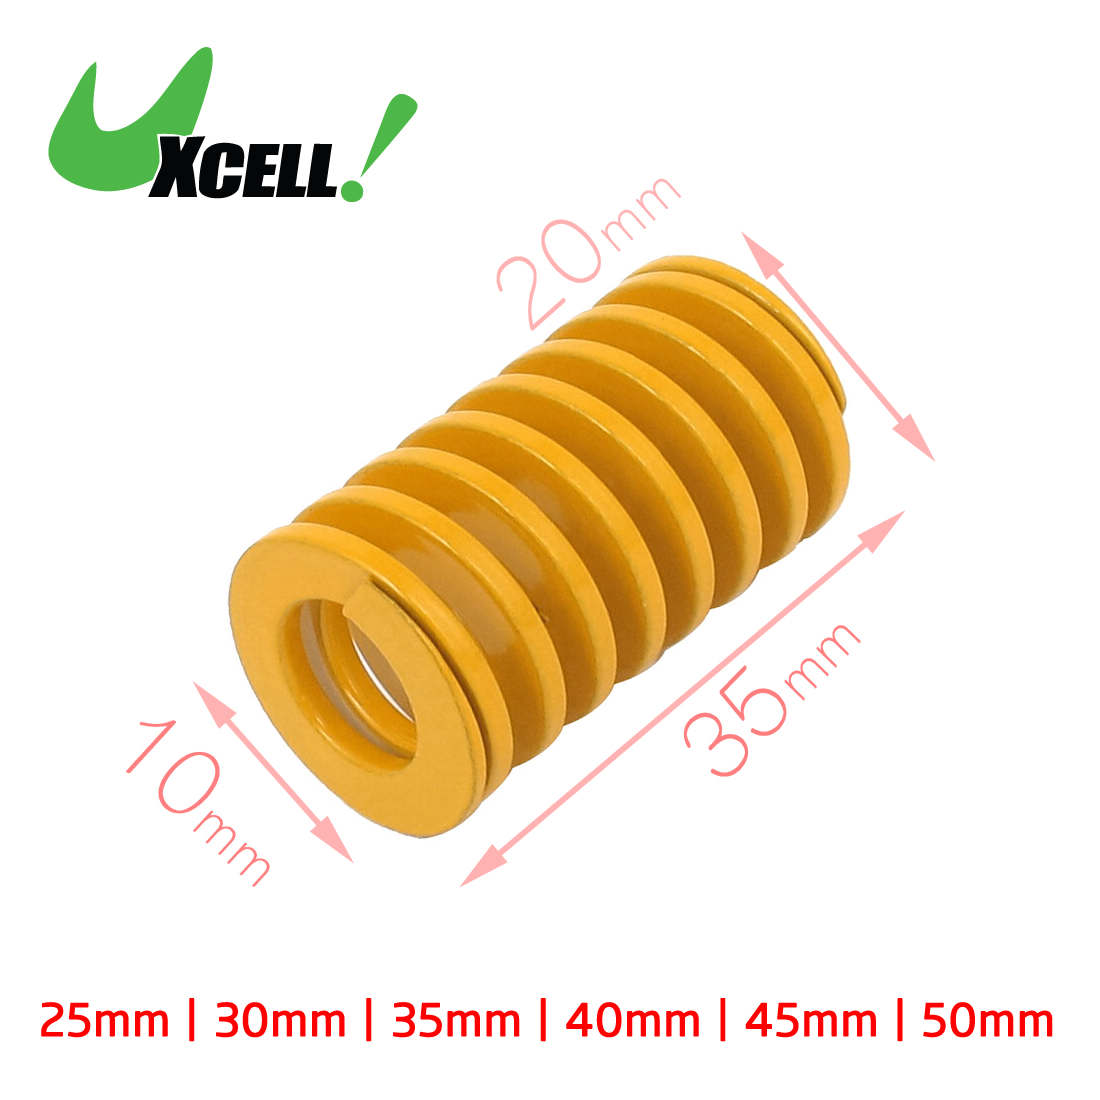 Uxcell Od 20Mm Id 10Mm Medium Load Spiral Stamping Compression Die Spring Red Long 25mm 30mm 35mm 40mm 45mm 50mm free shipping 10pcs 22mm x 11mm x 50mm spiral metal stamping compression die spring